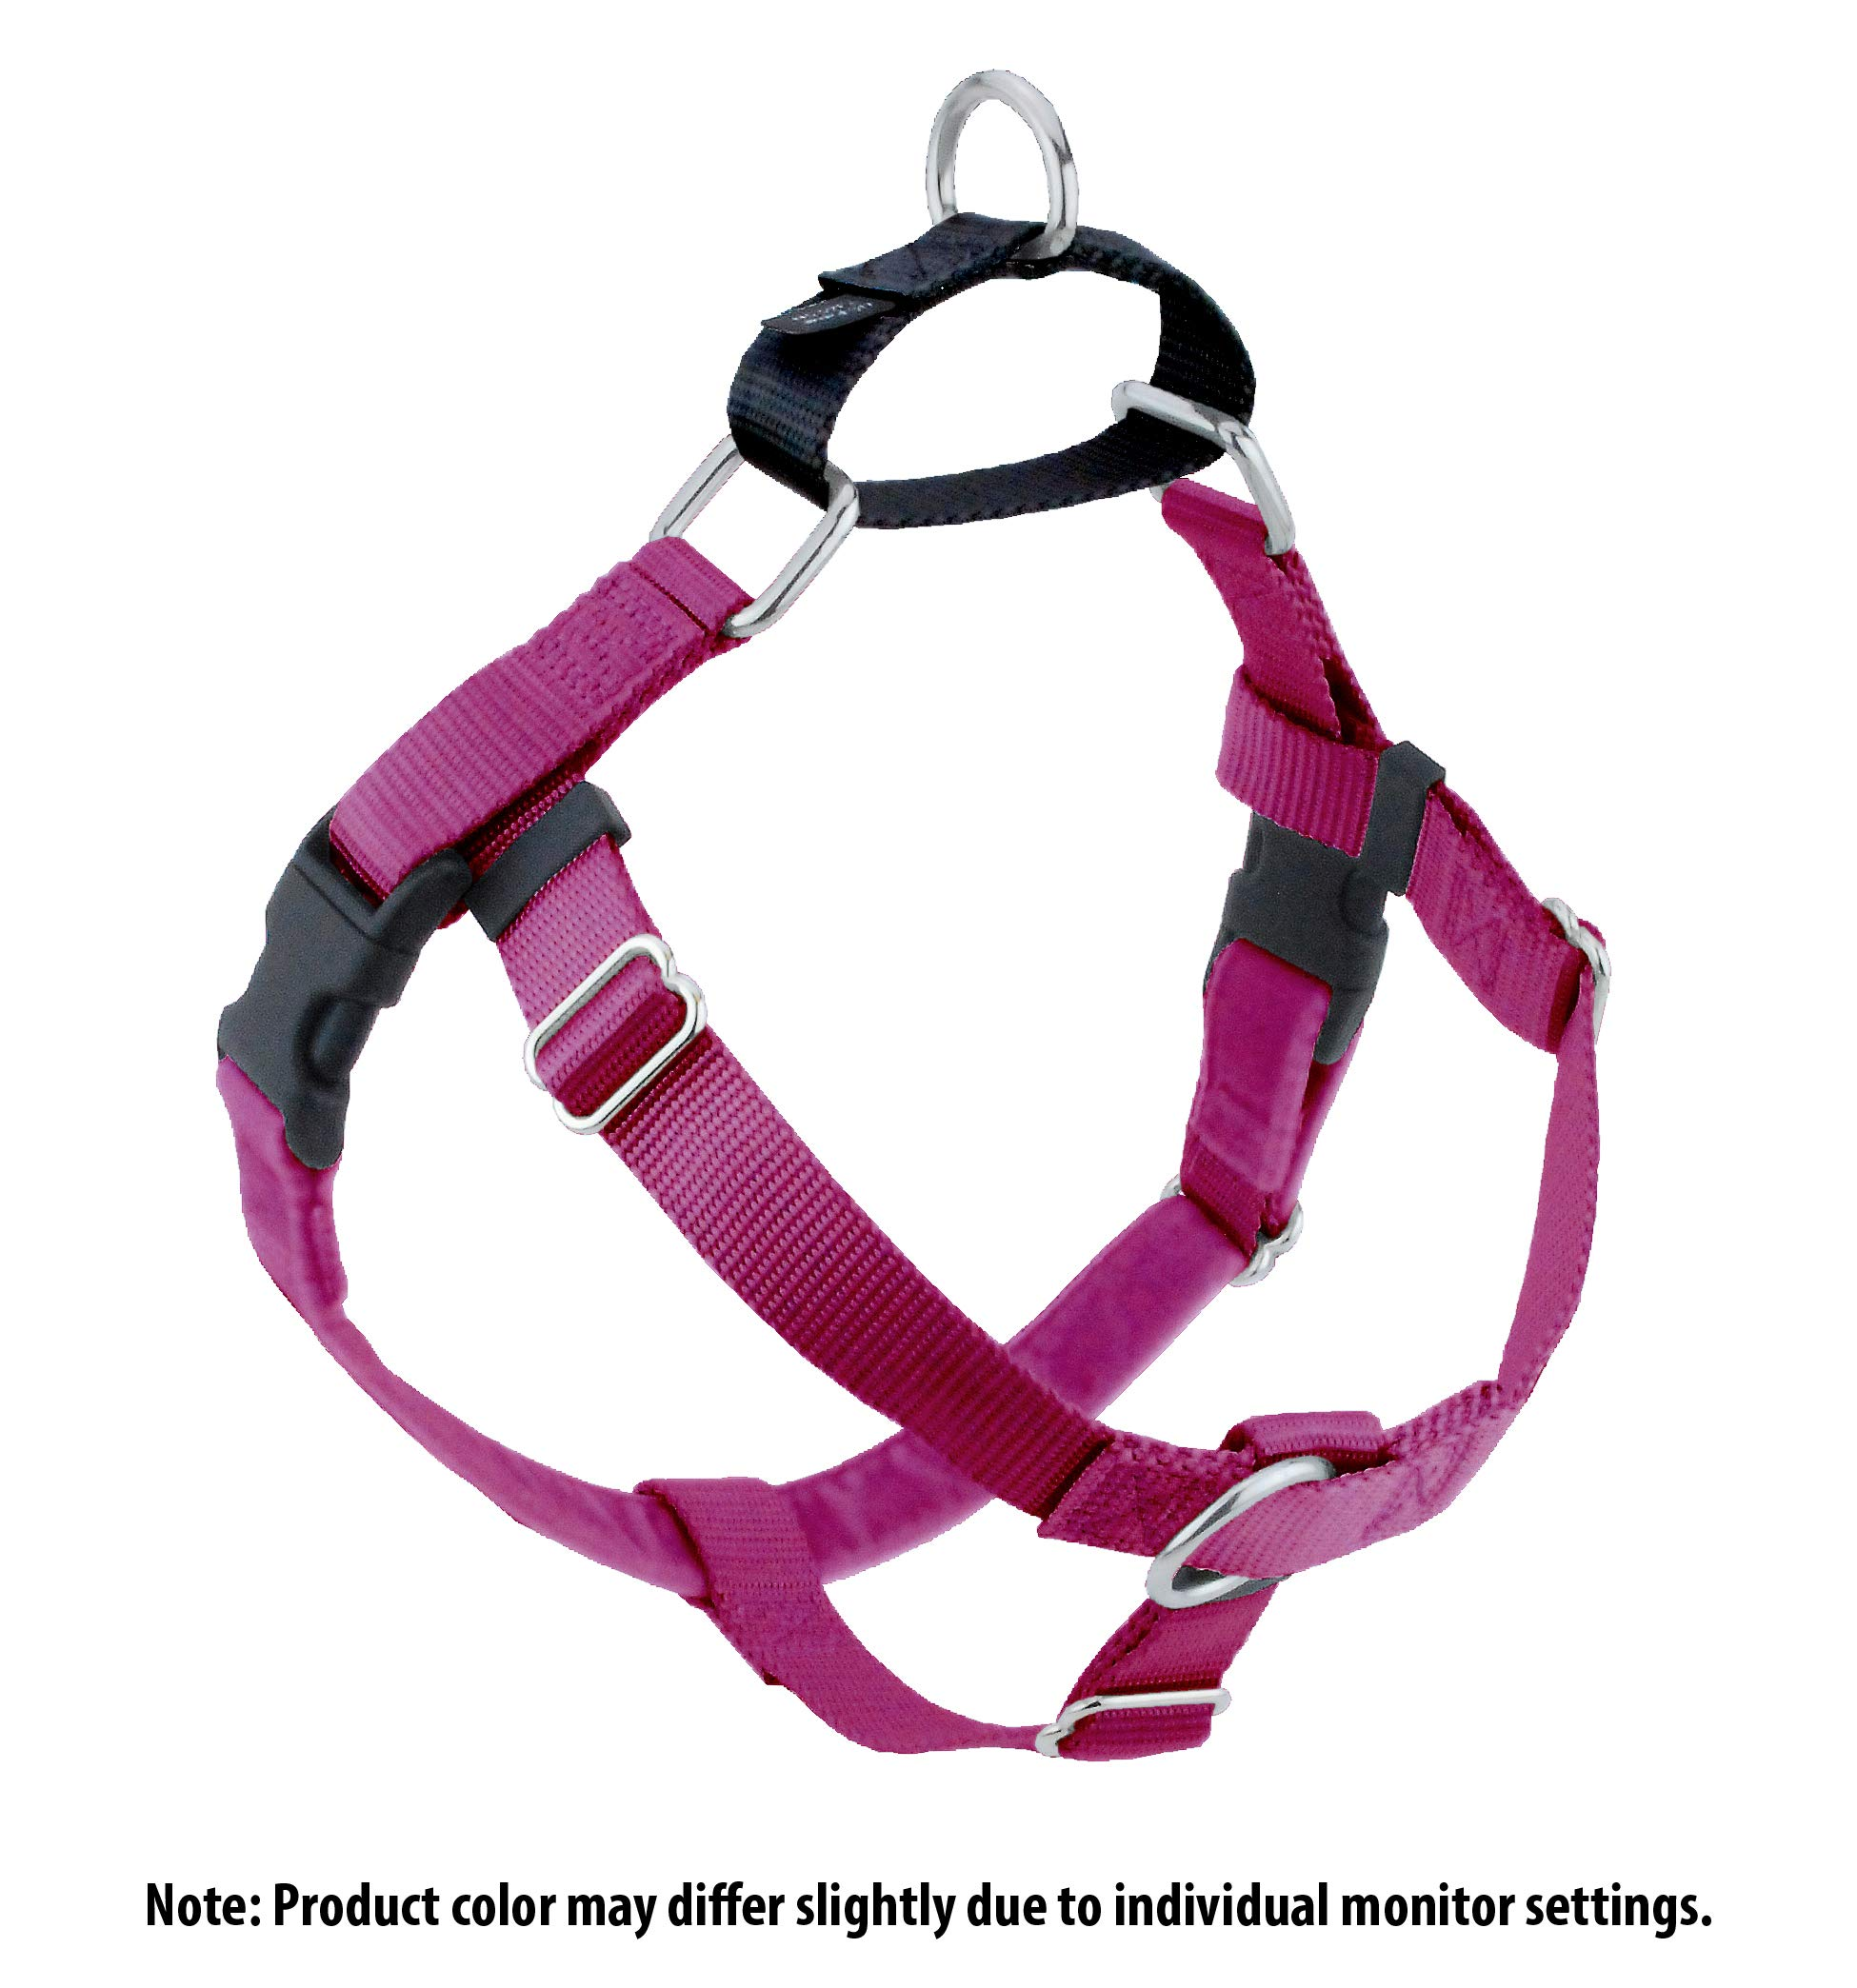 2 Hounds Design Freedom No-Pull Dog Harness, Adjustable Comfortable Control for Dog Walking, Made in USA (Leash Sold Separately) (Large 1'') (Raspberry)